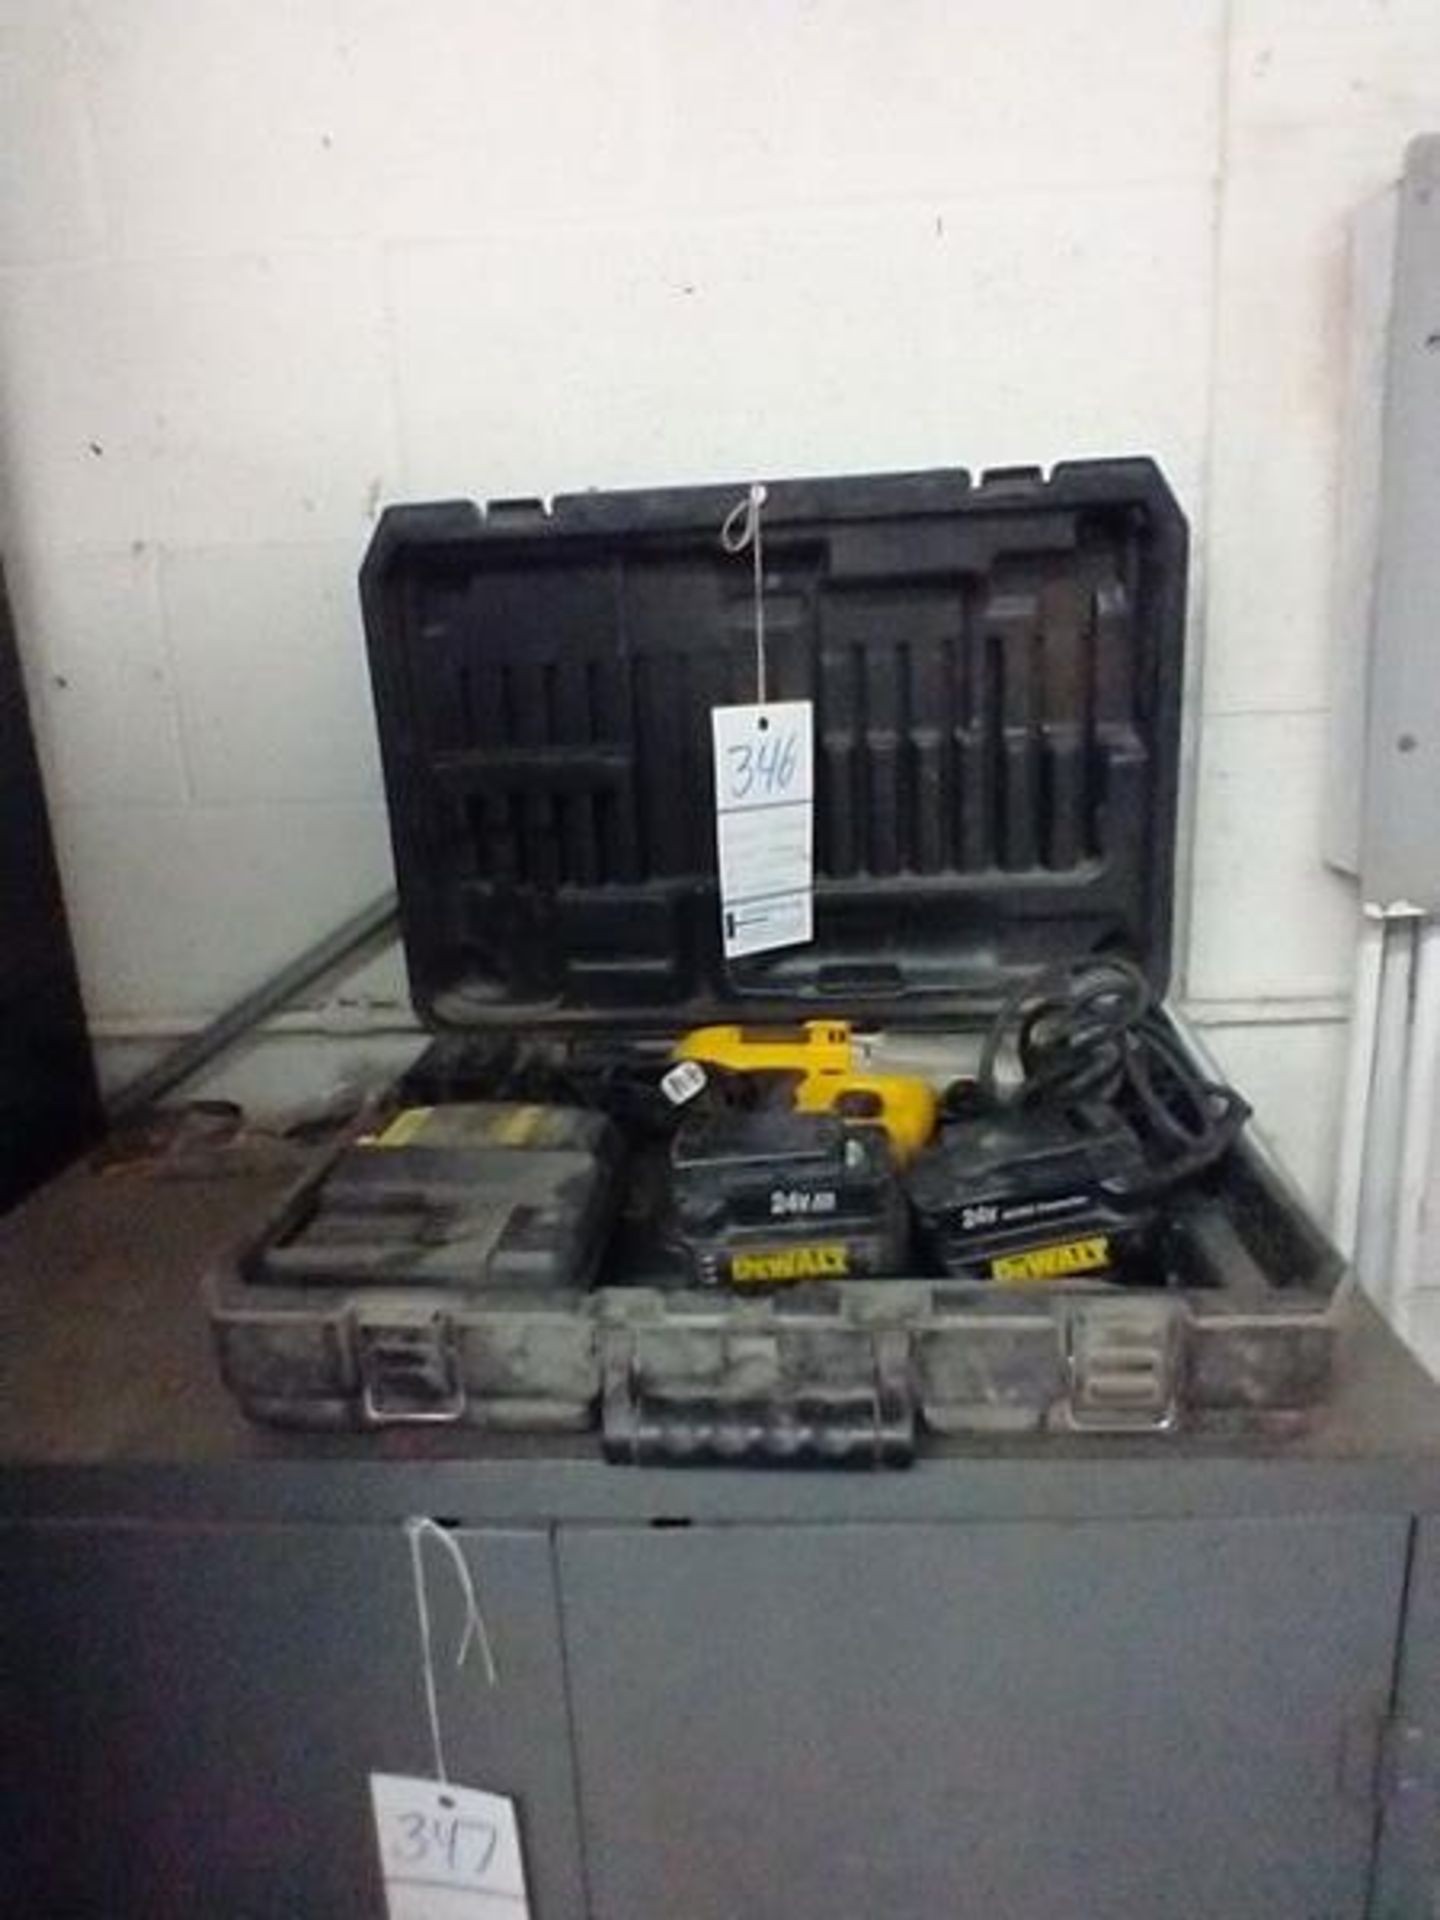 DEWALT DW006 24V HAMMER DRILL WITH 2 BATTERIES AND AC ADAPTER